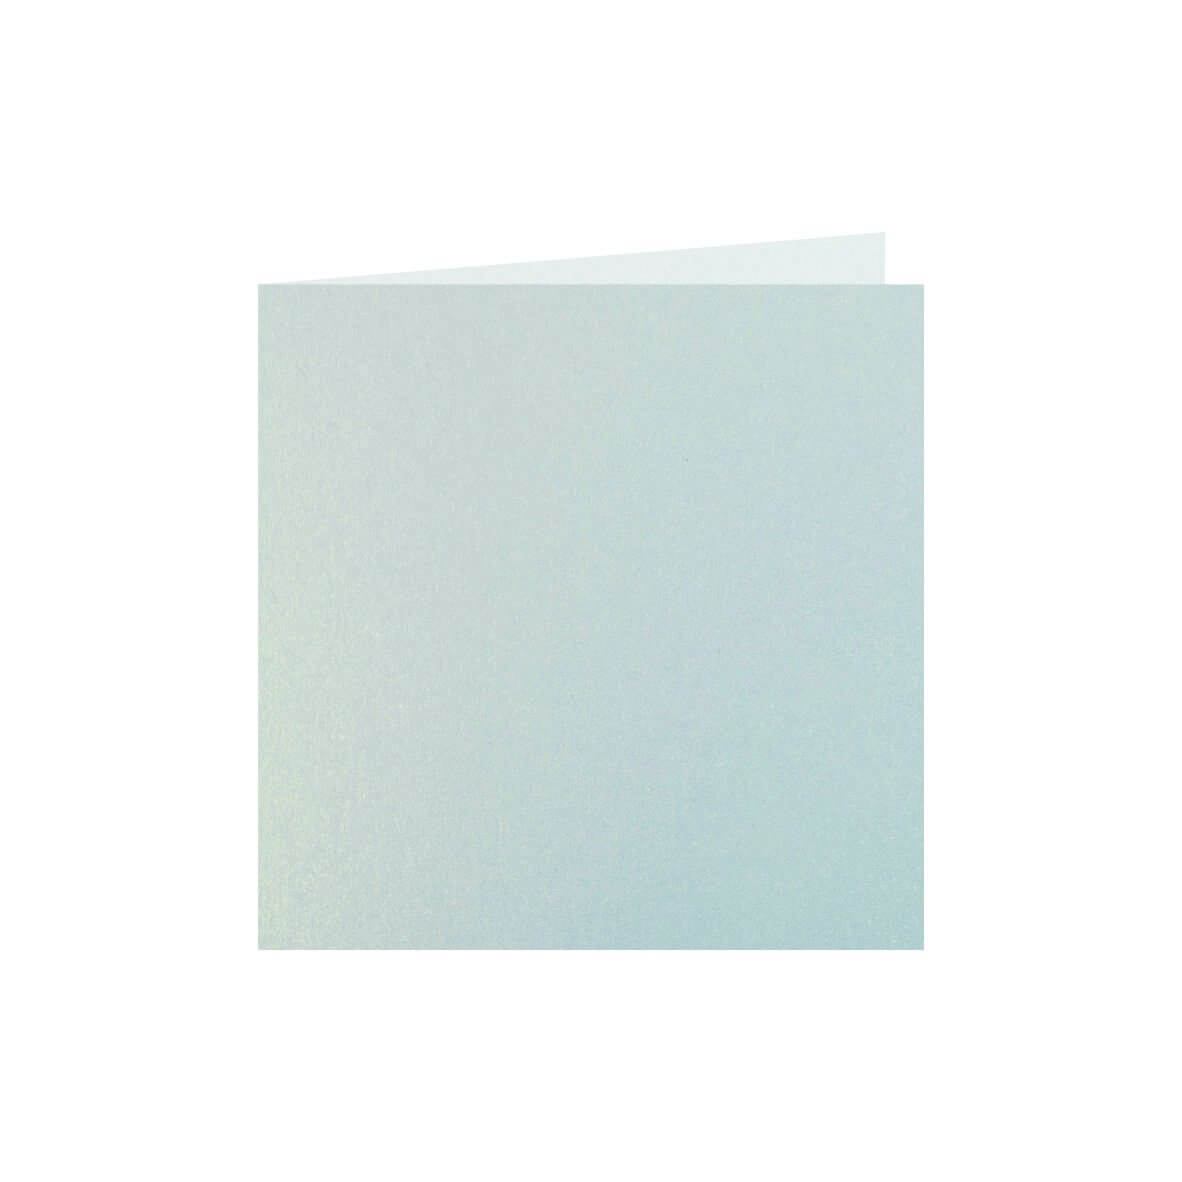 Paperstock Large Square Insert - White Lustre